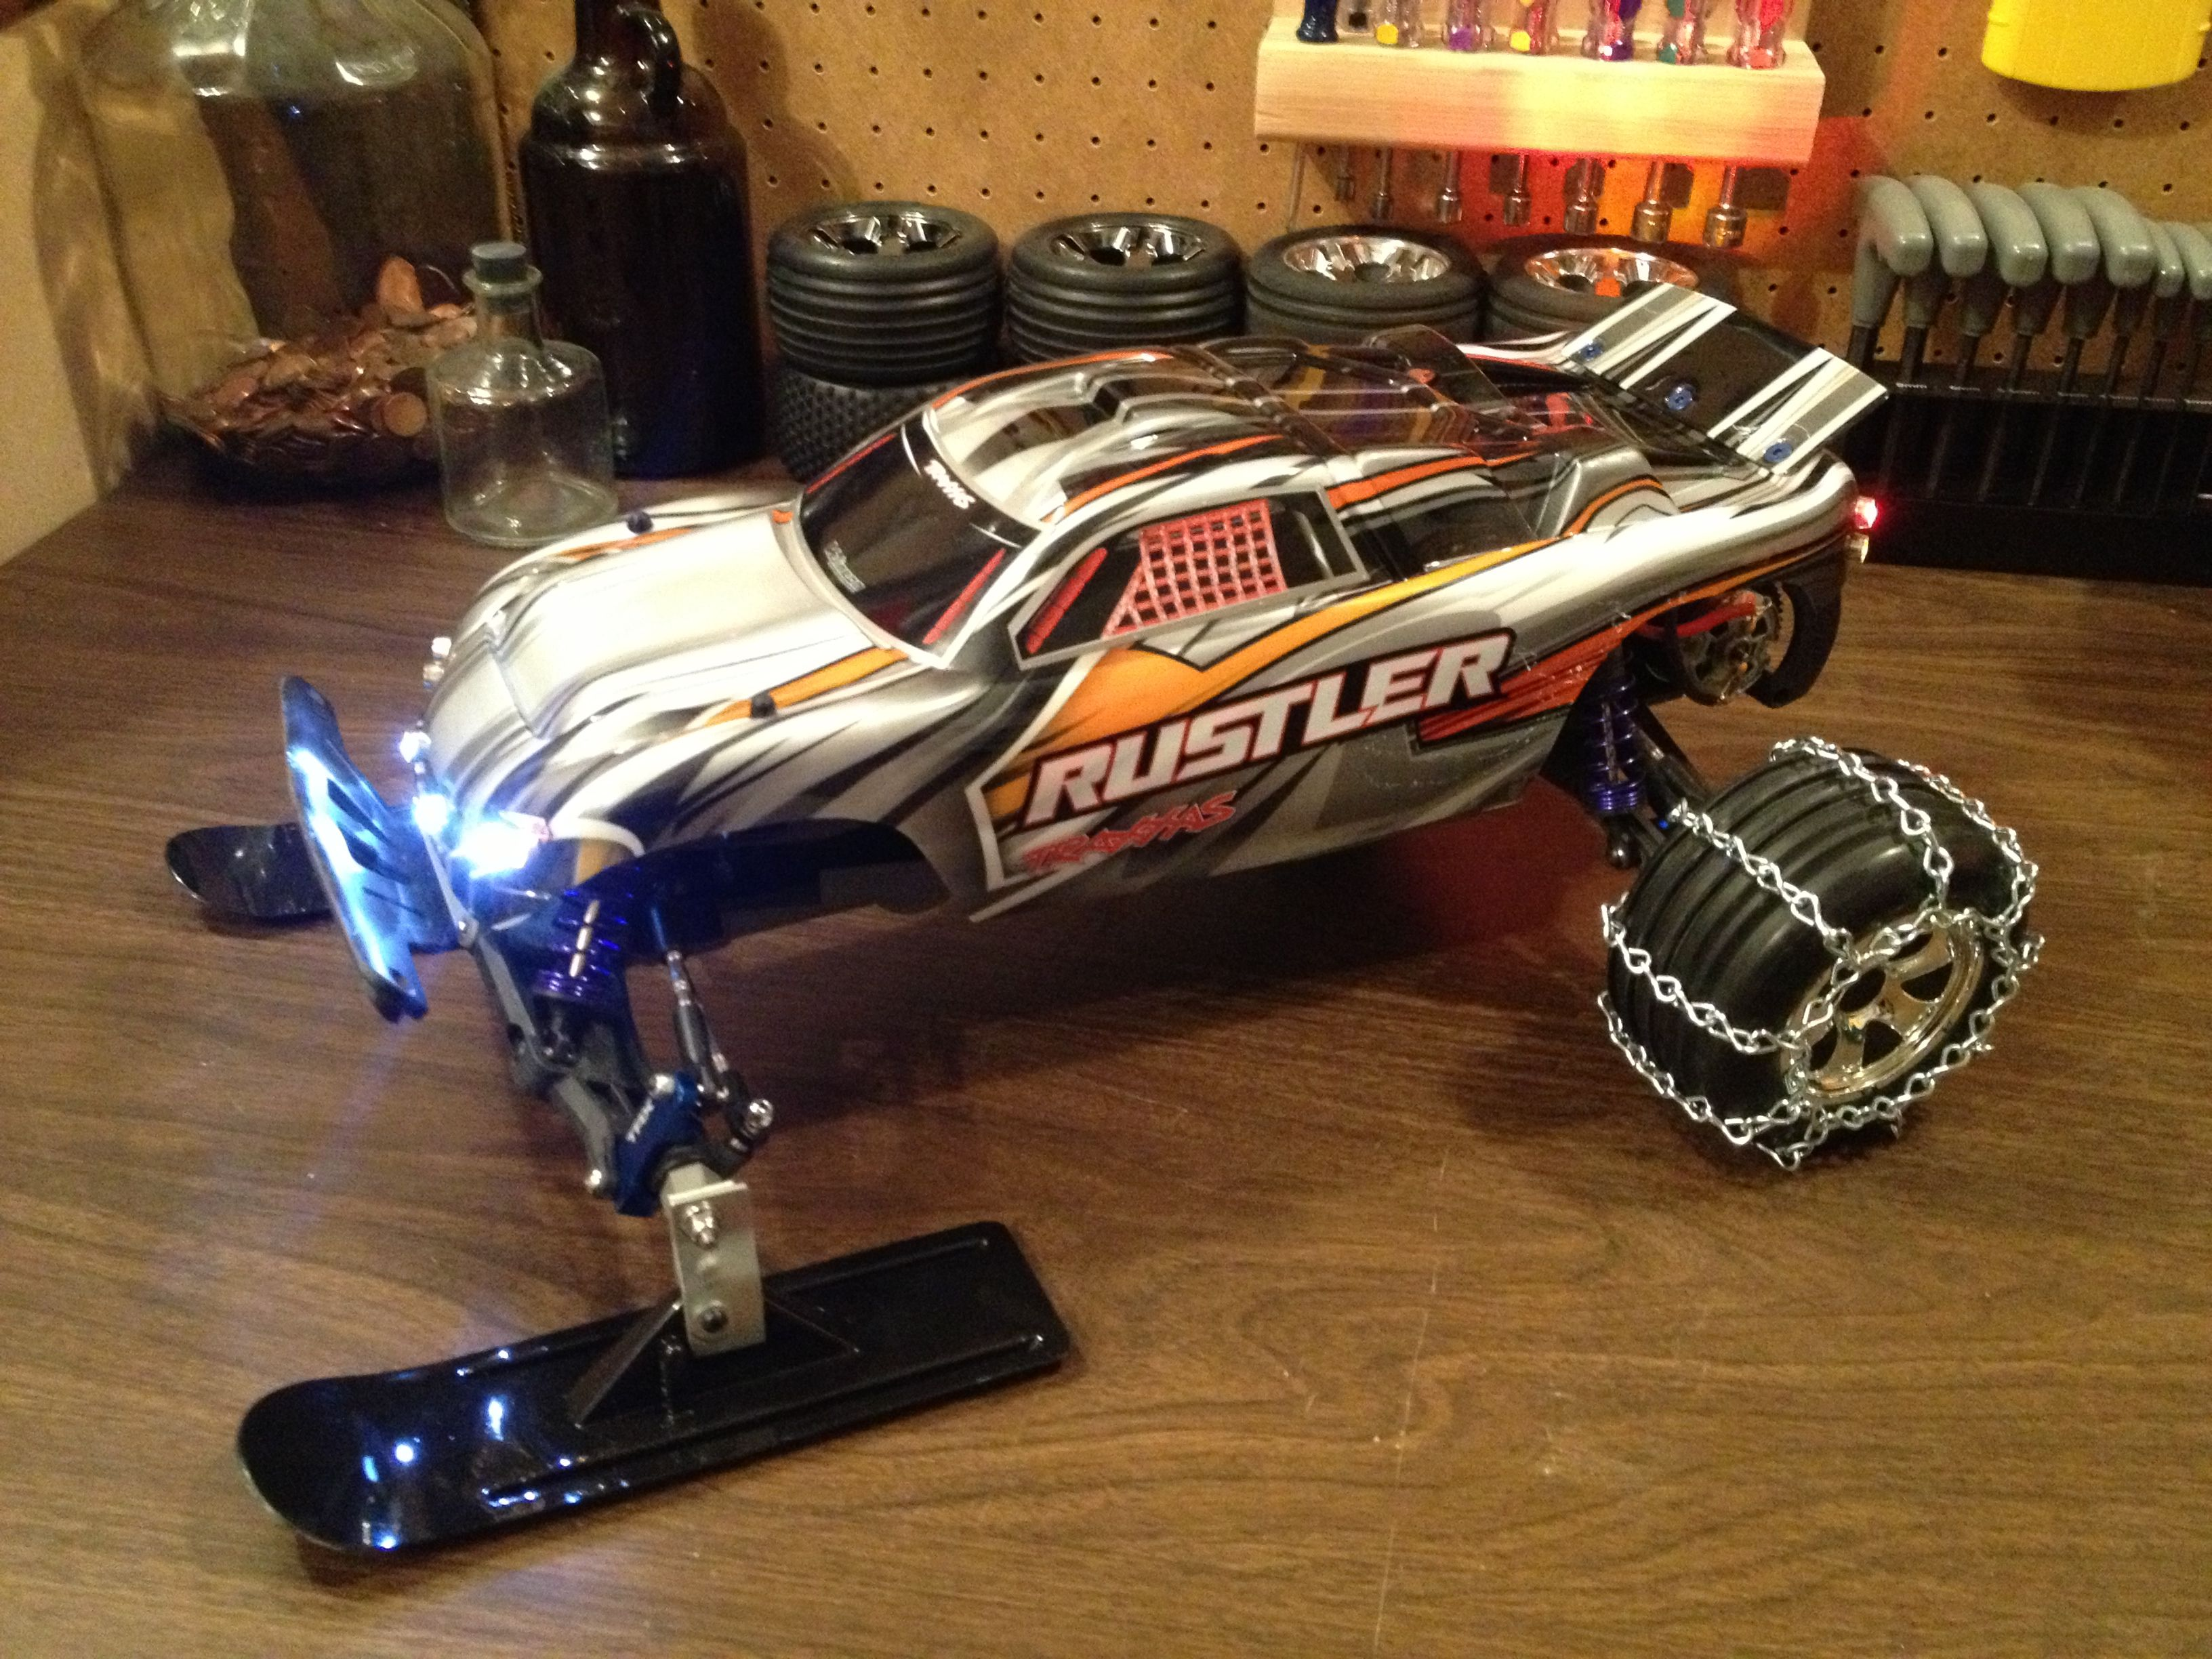 My Traxxas Rustler XL5 front snow skis, rear chains, and